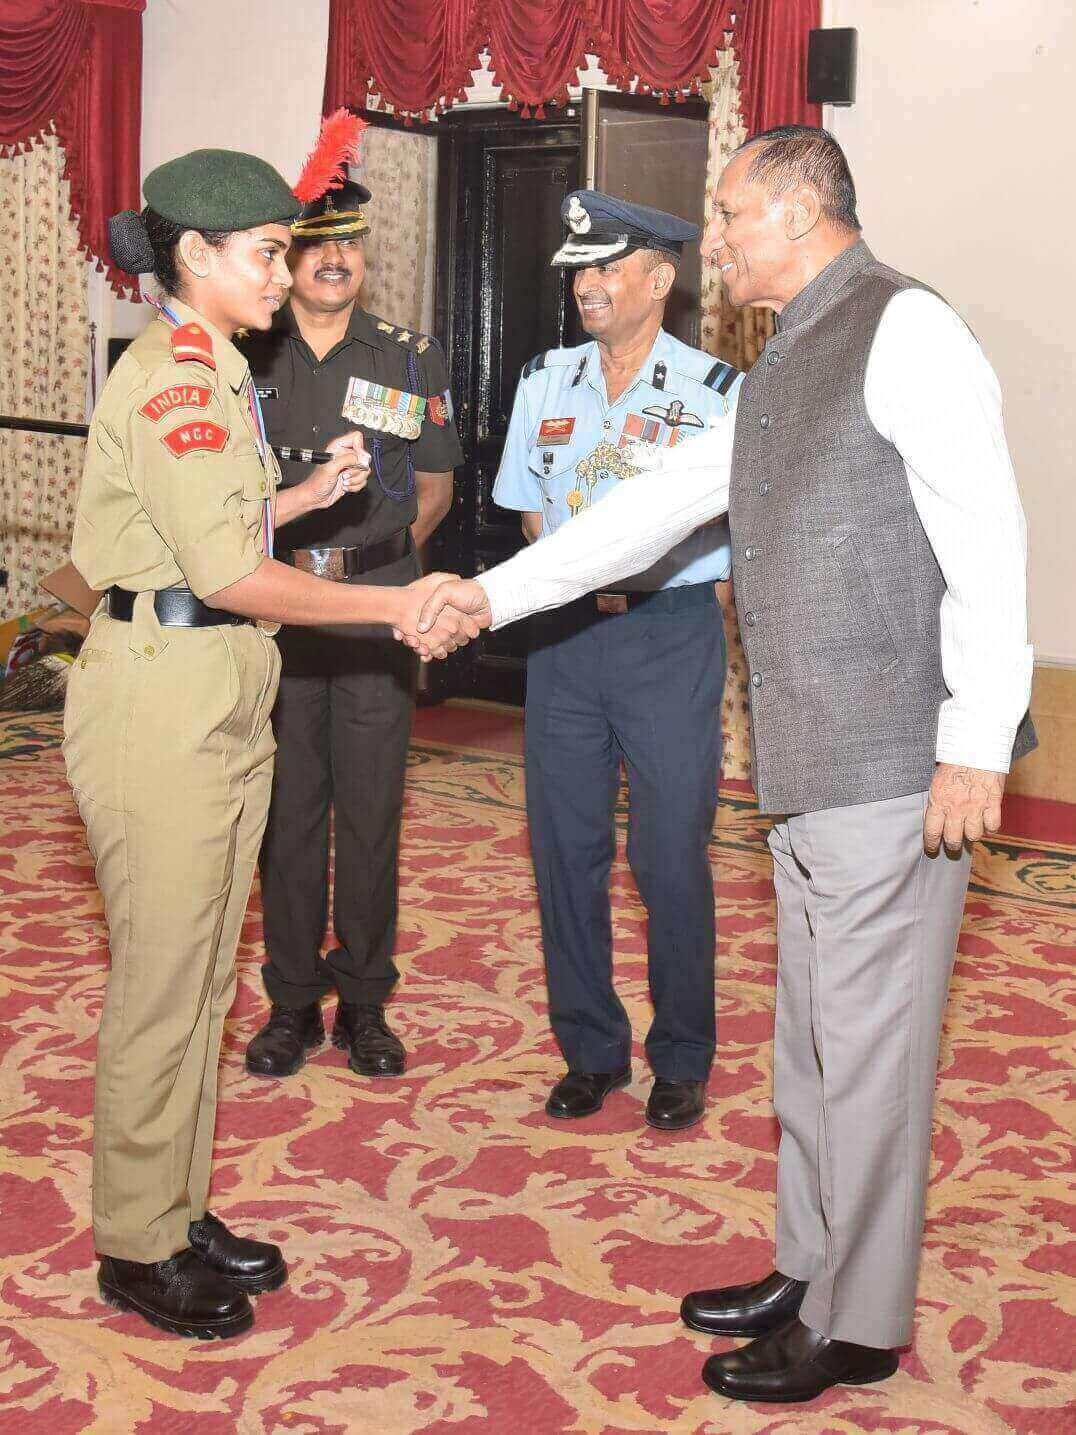 Governor ESL Narasimhan participated in the \'At Home\' organized at Raj Bhavan to felicitate NCC Cadets who participated in the Republic Day Camp 2017 held at New Delhi, and presented medals to winning cadets. NCC Cadets presented Cultural dance pro